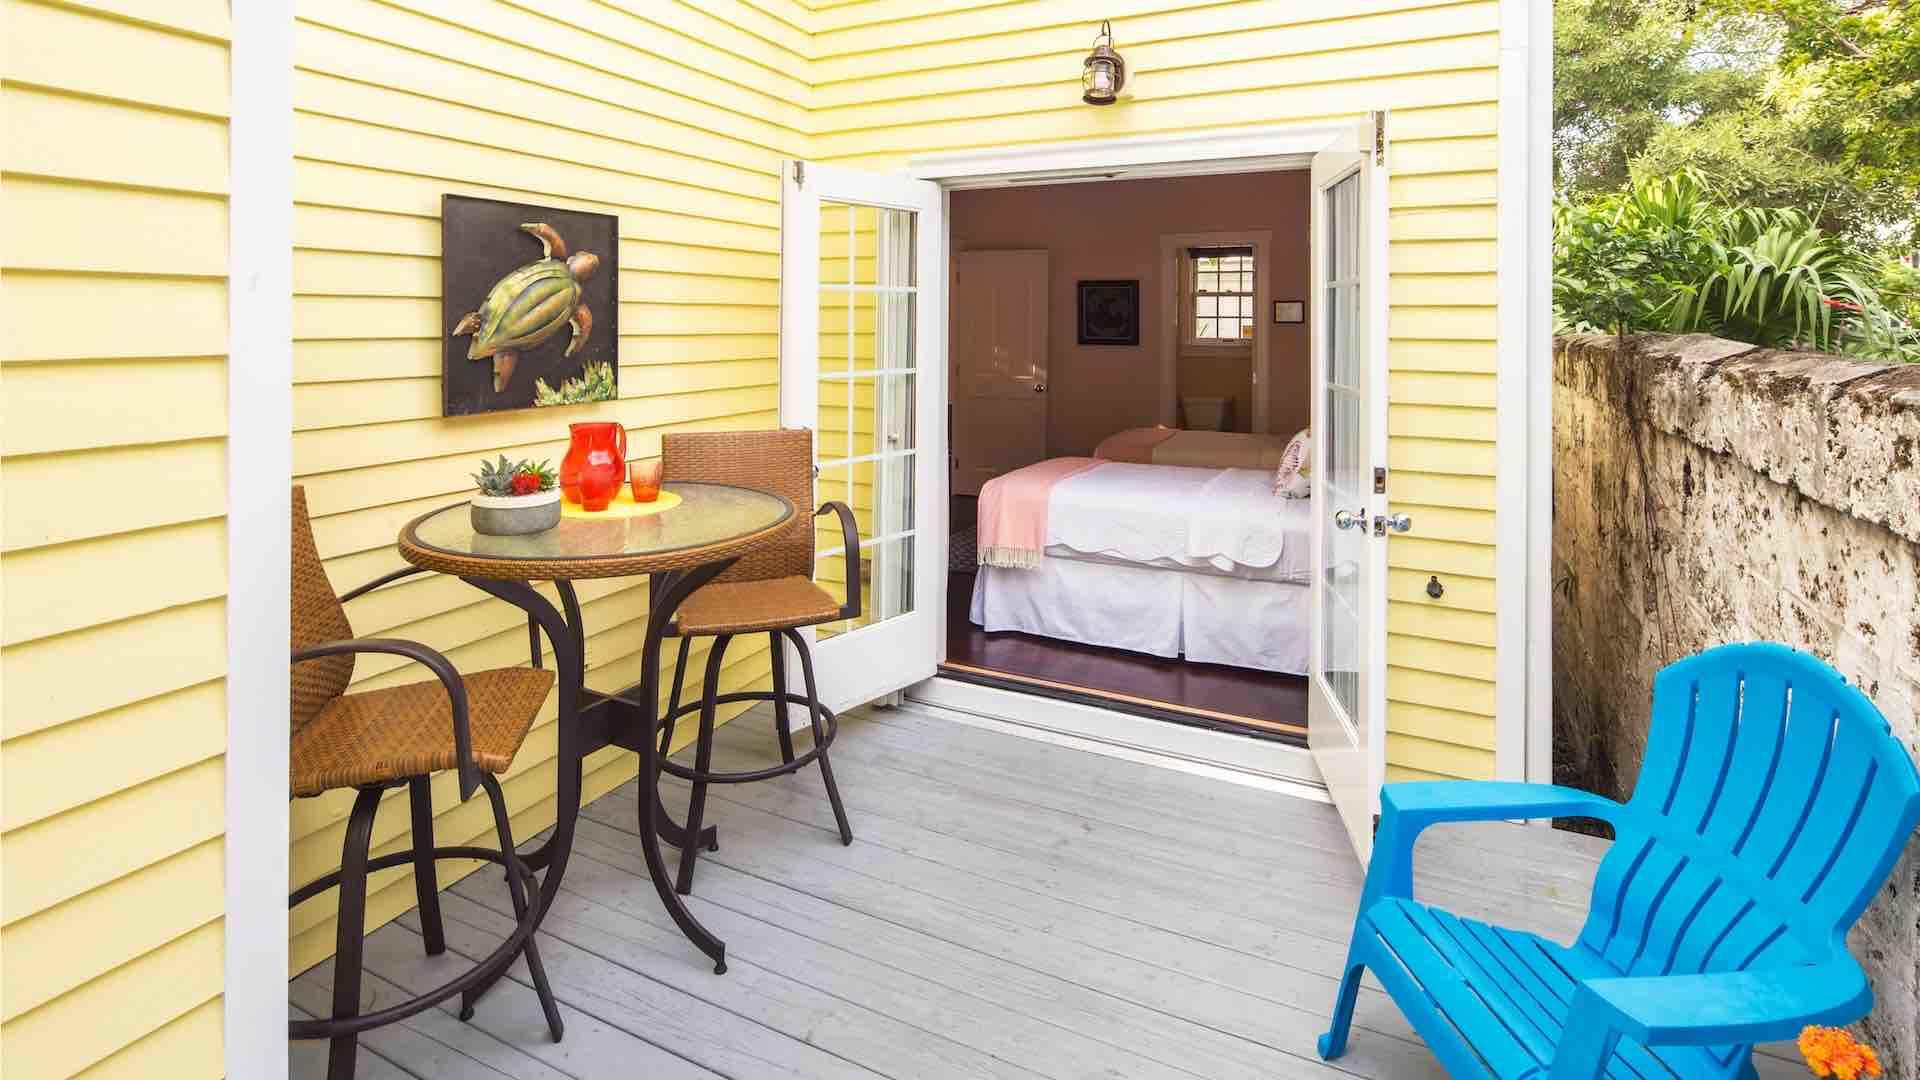 The first floor bedroom has French doors that open up to the back porch...